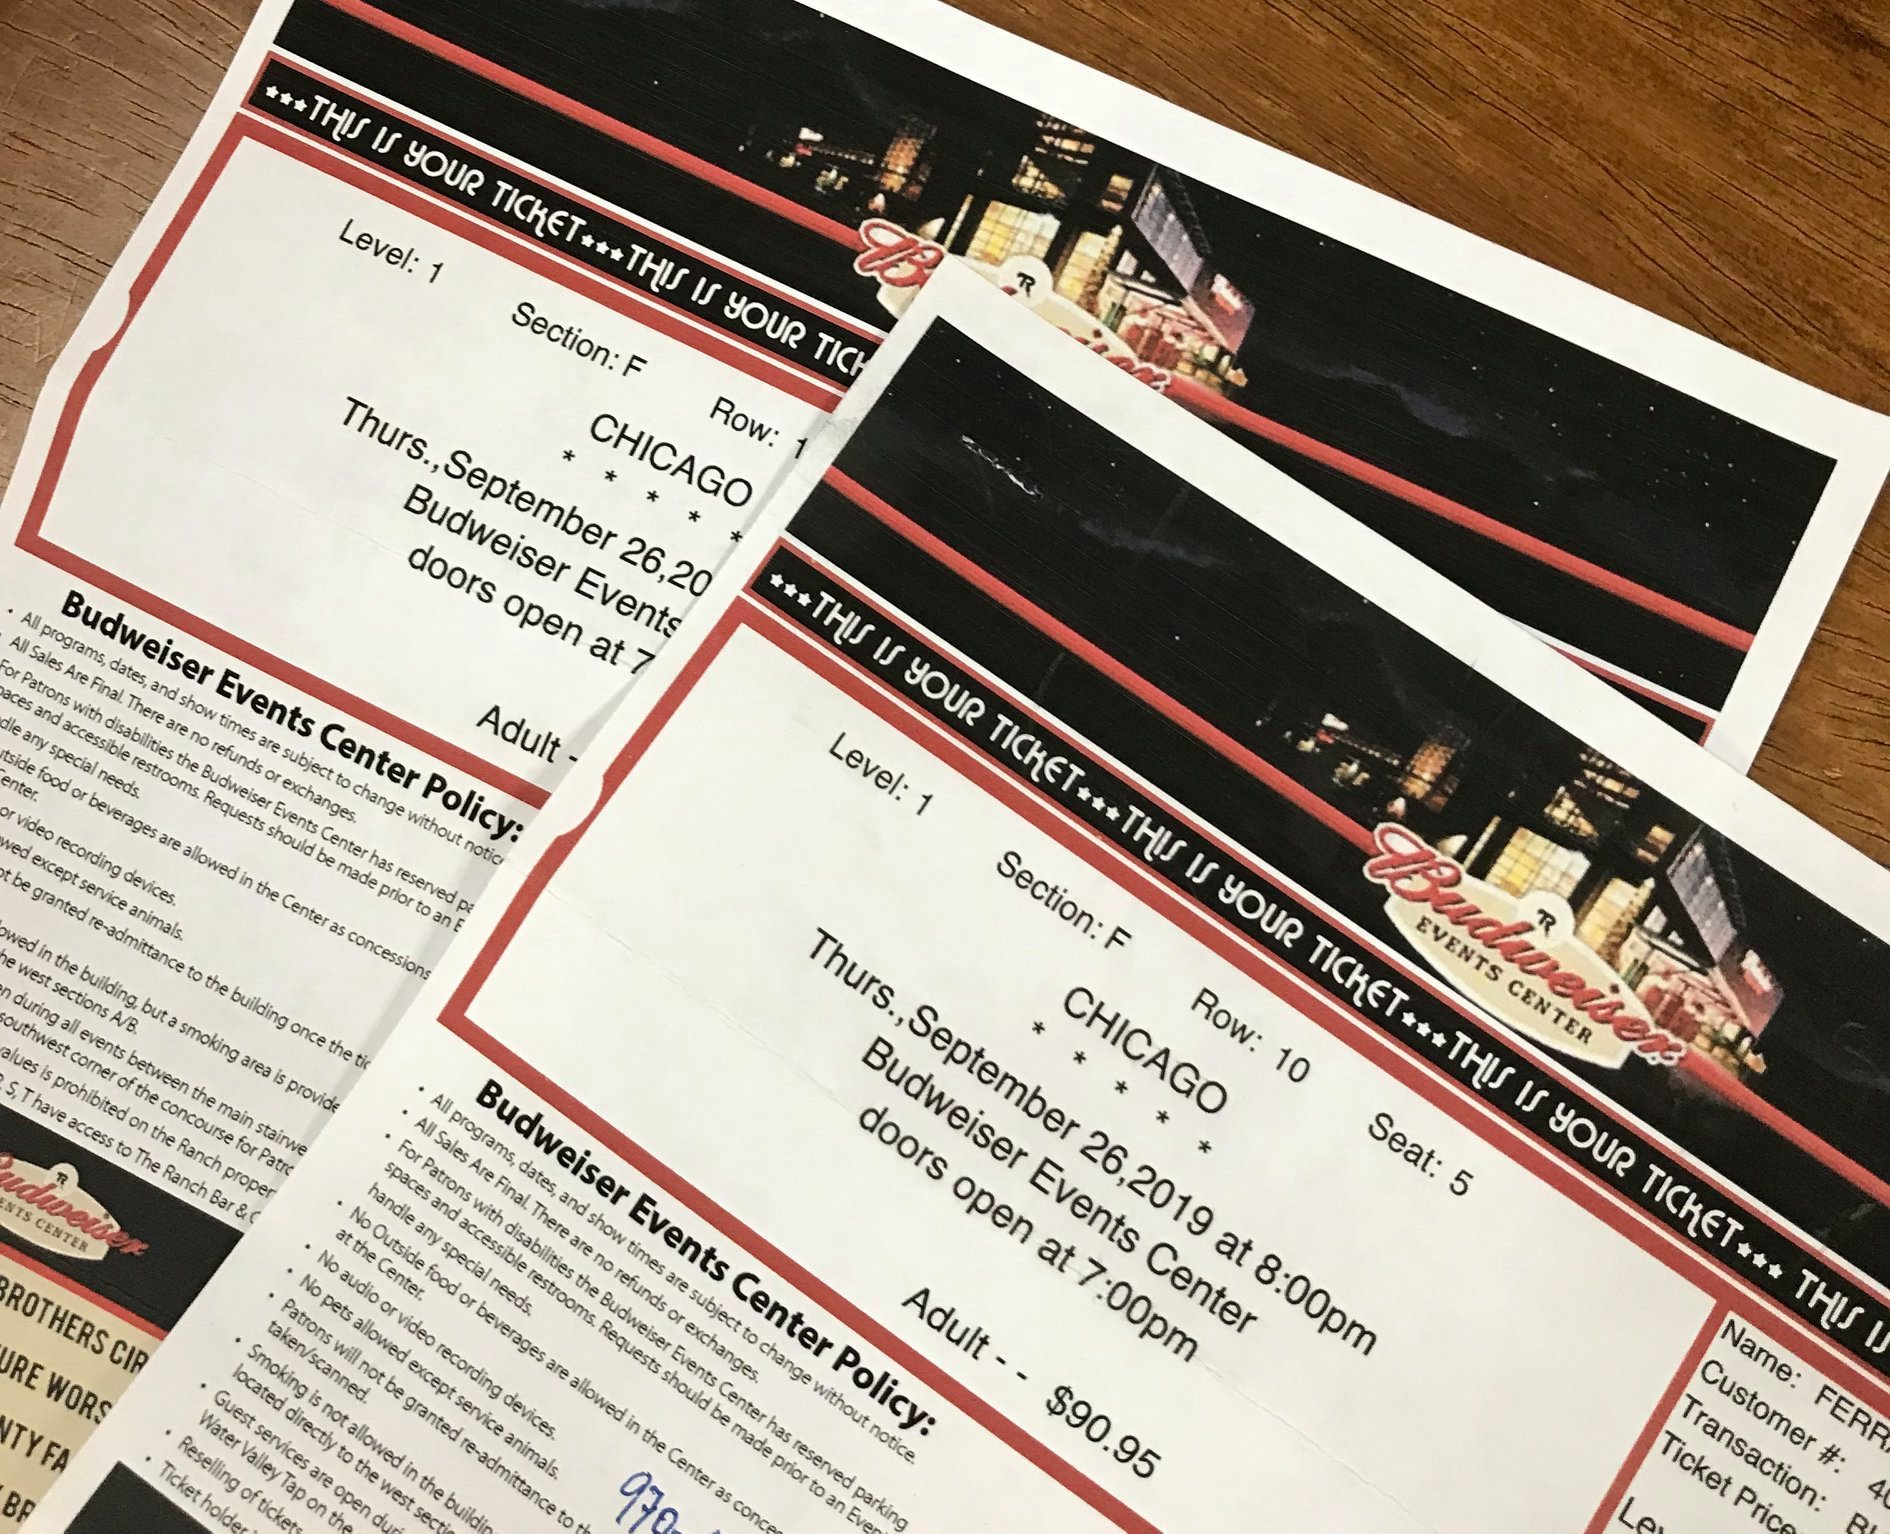 Woohoo! Enter to win these tickets!